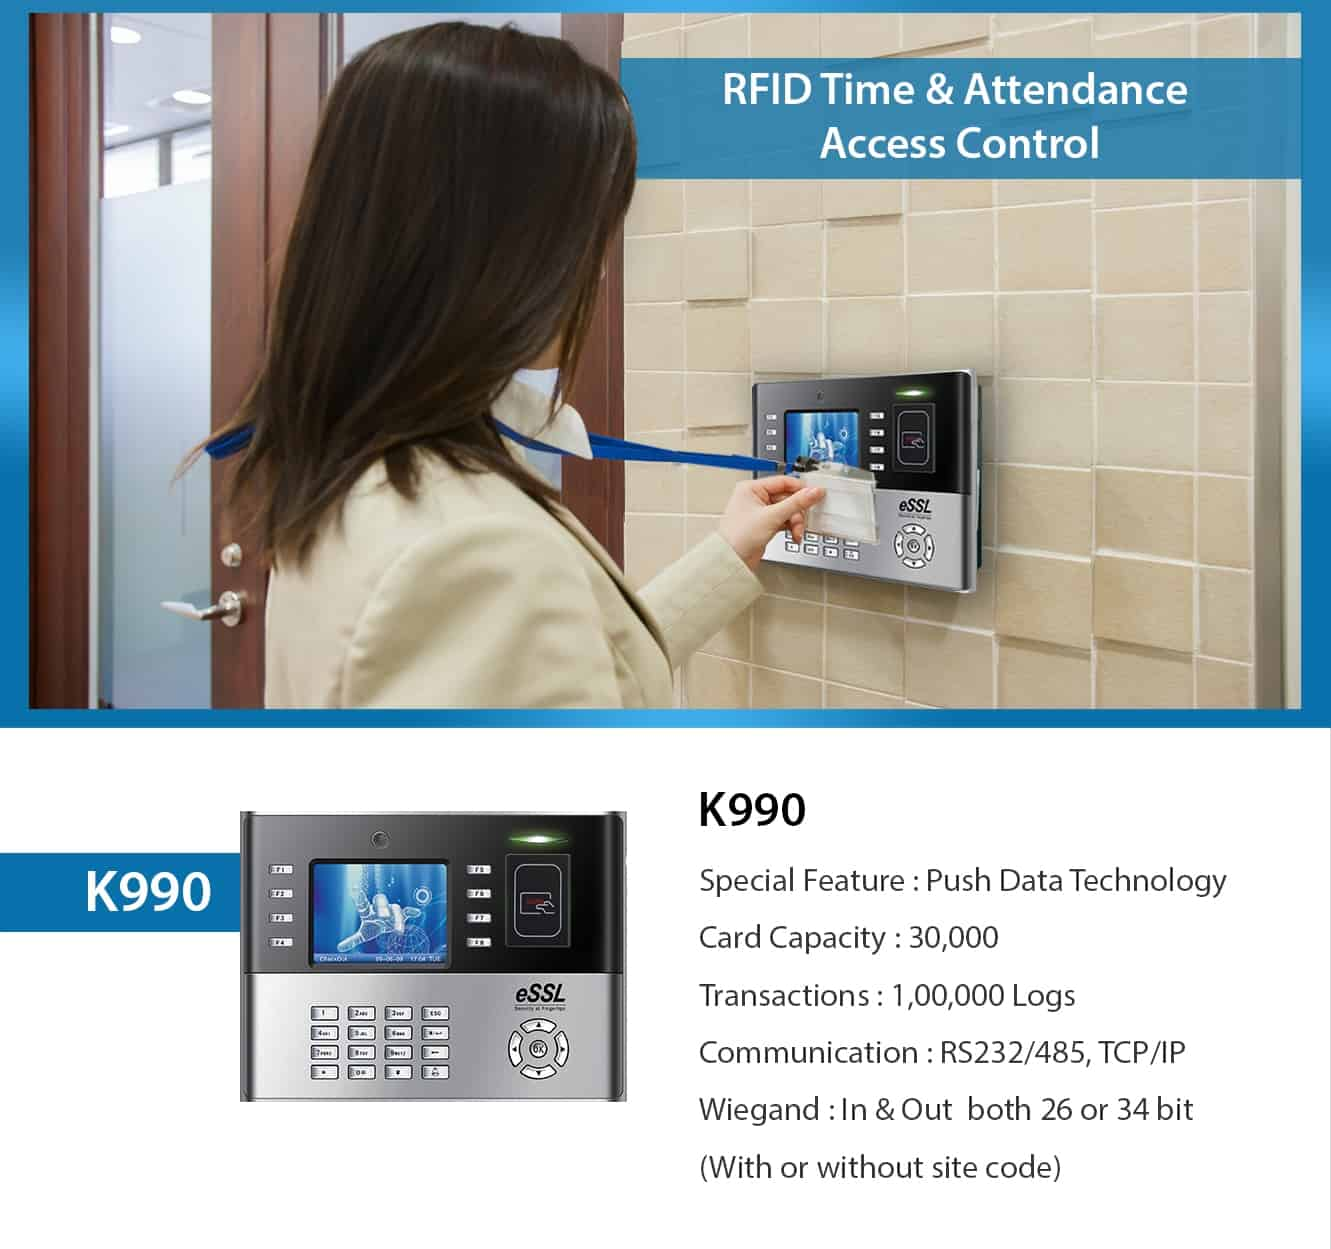 eSSL K990 RFID Access Control Machine